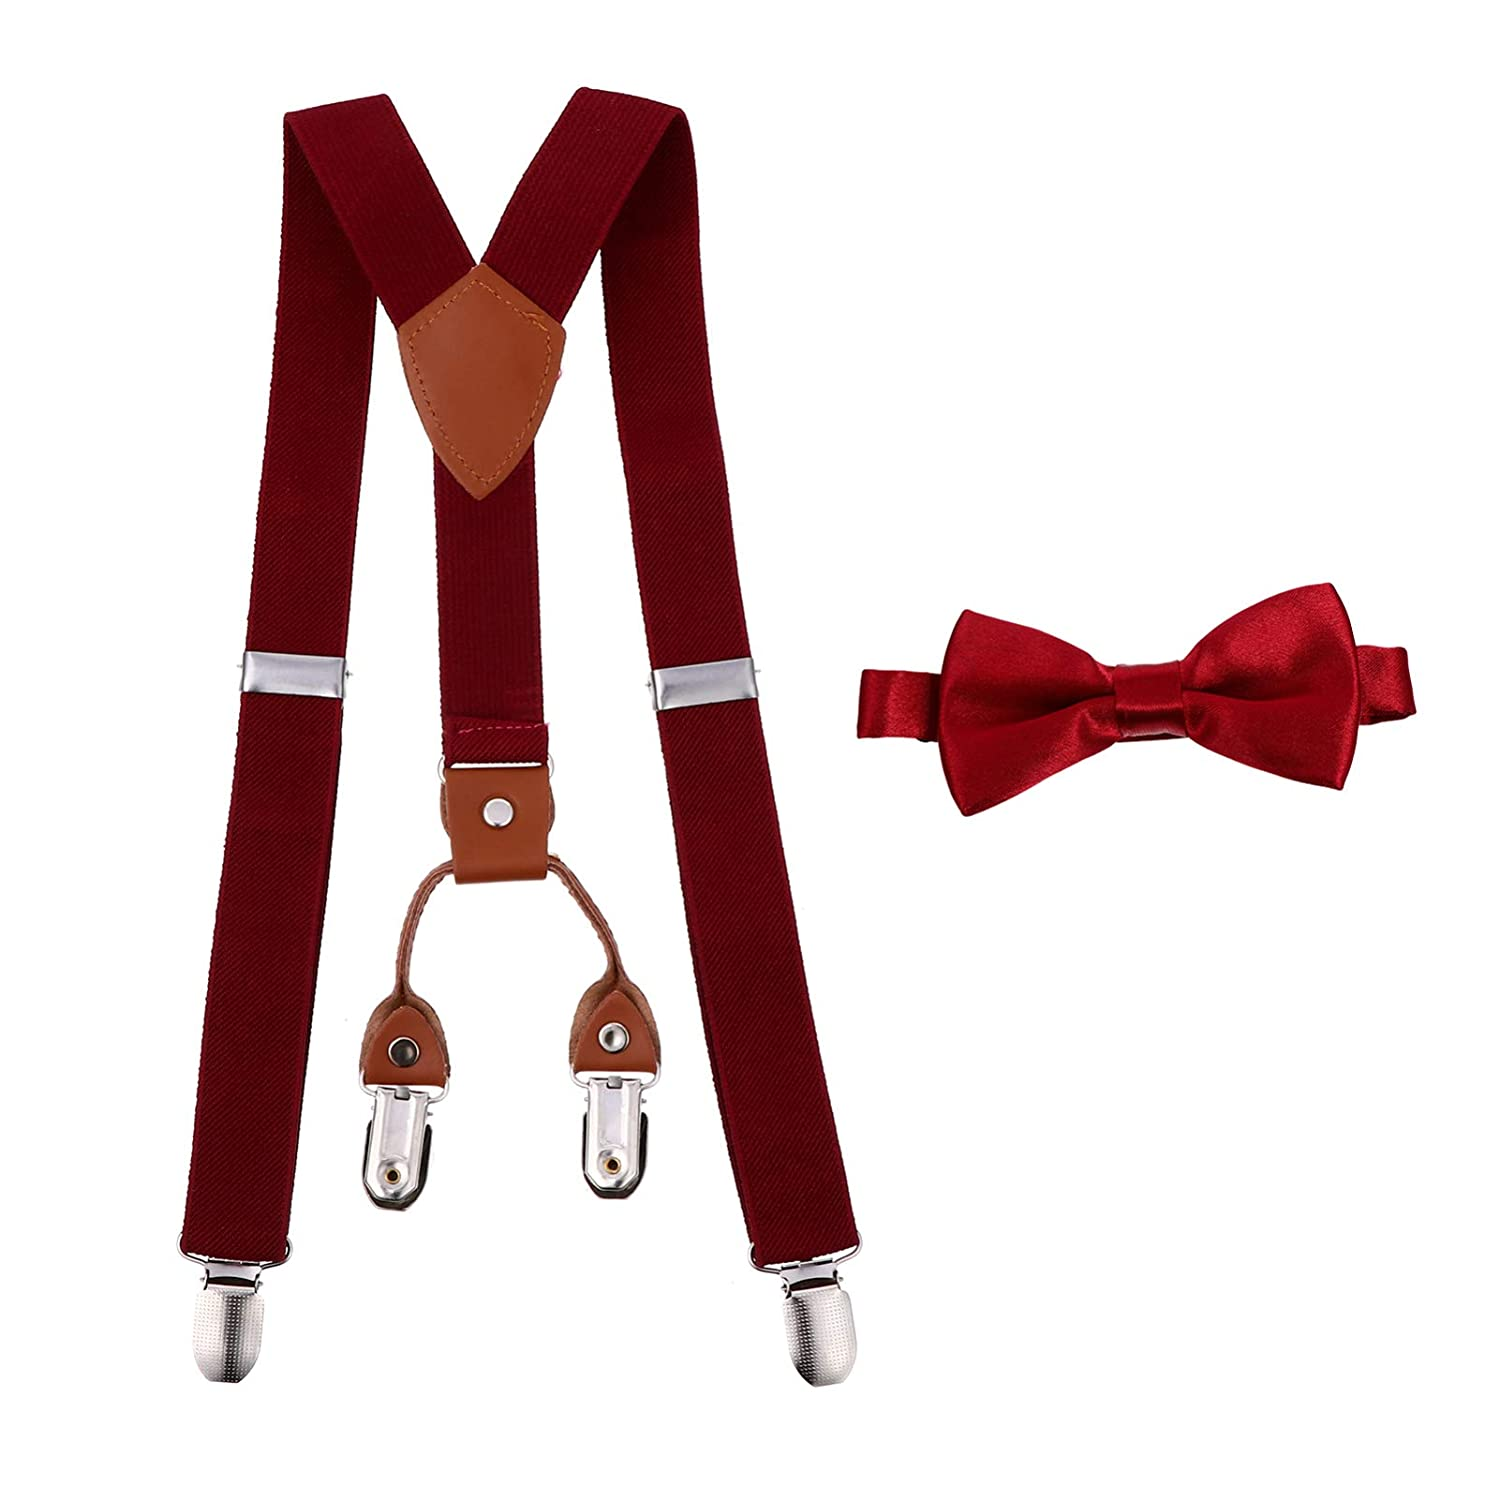 NUOBESTY Suspenders Bow Tie Set Red, Toddler Kids Adjustable Suspenders and Matching Bow Tie Set 4 Clips Suspenders and Matching Bow Tie Set- 40 to 65cm